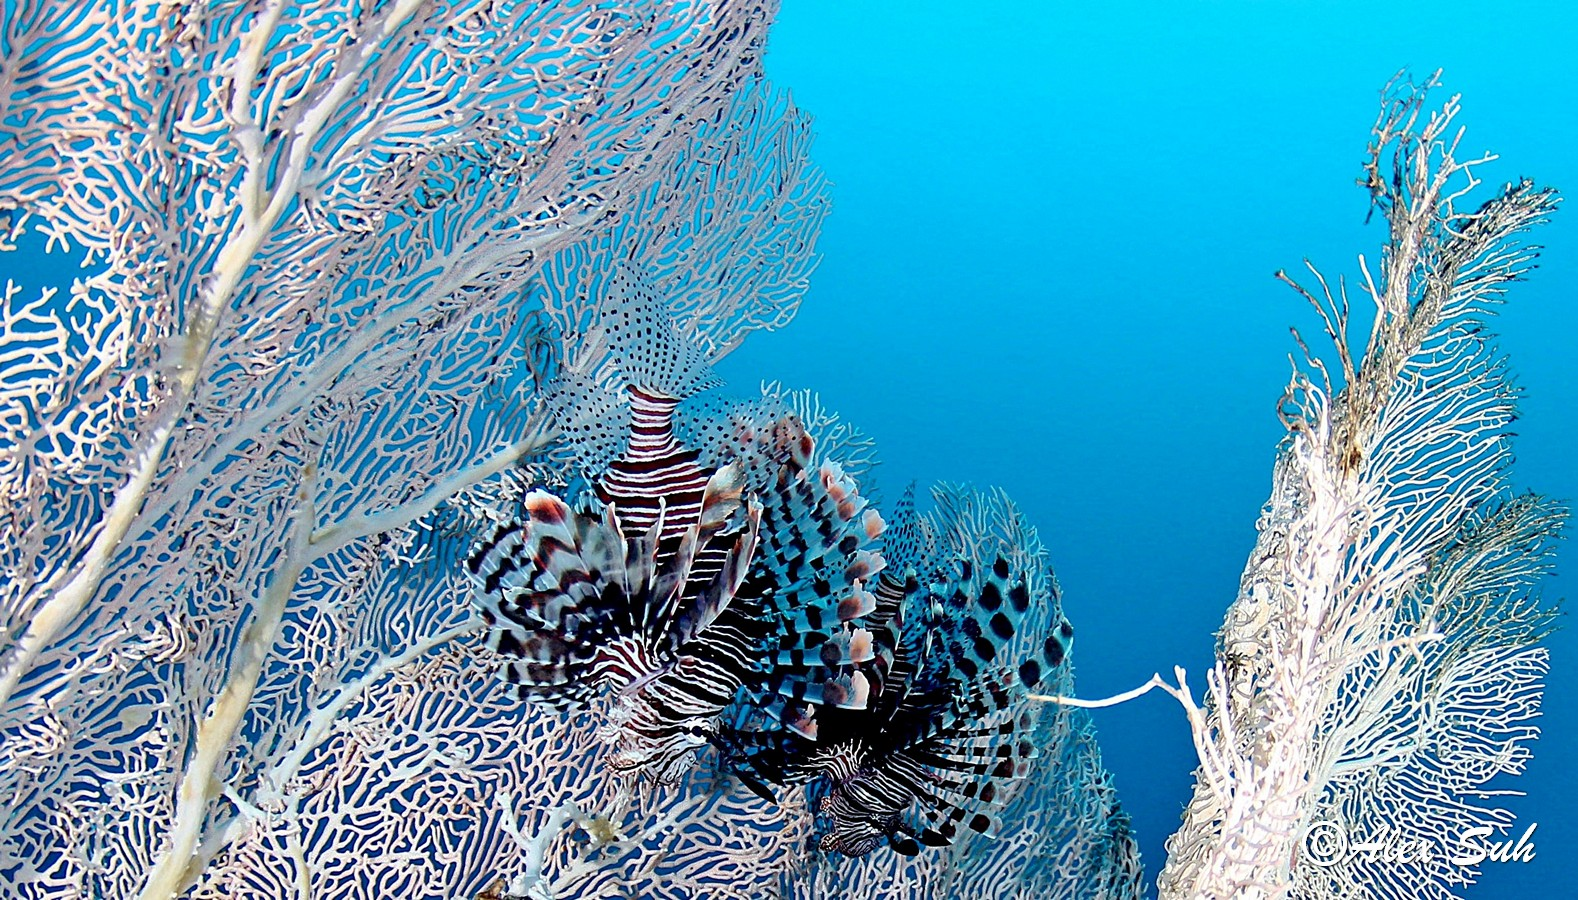 Giant Sea Fan with 2 Large Lion Fish